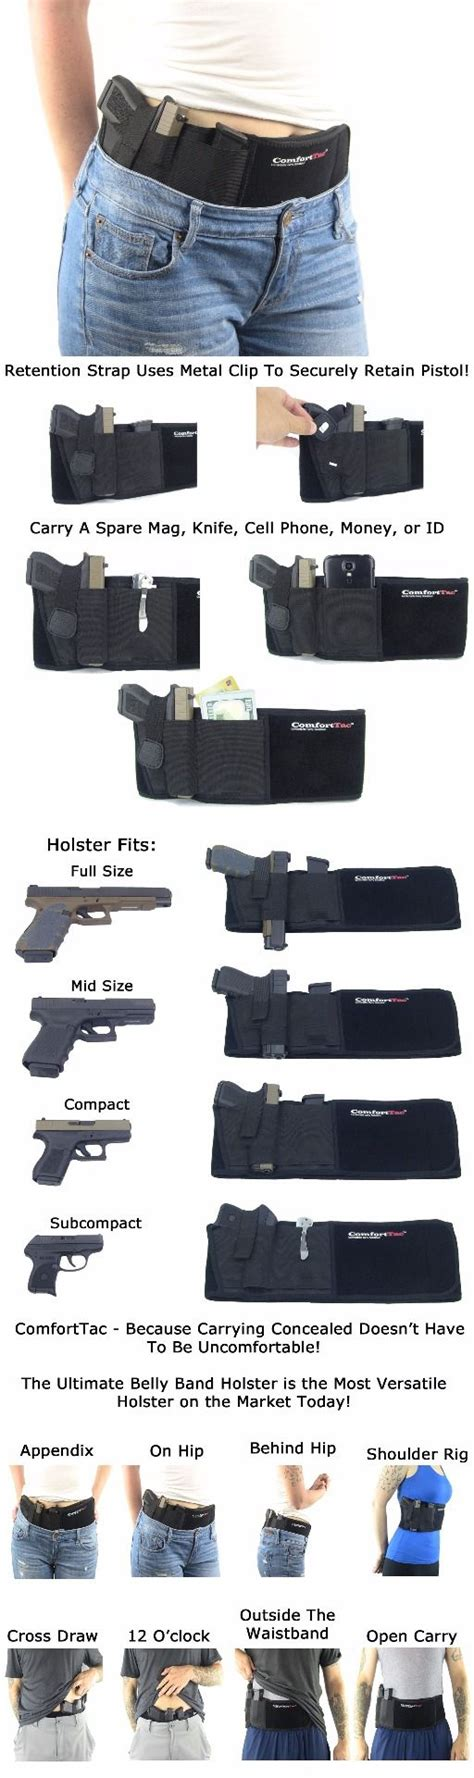 concealed carry knives for sale best 25 concealed carry ideas on